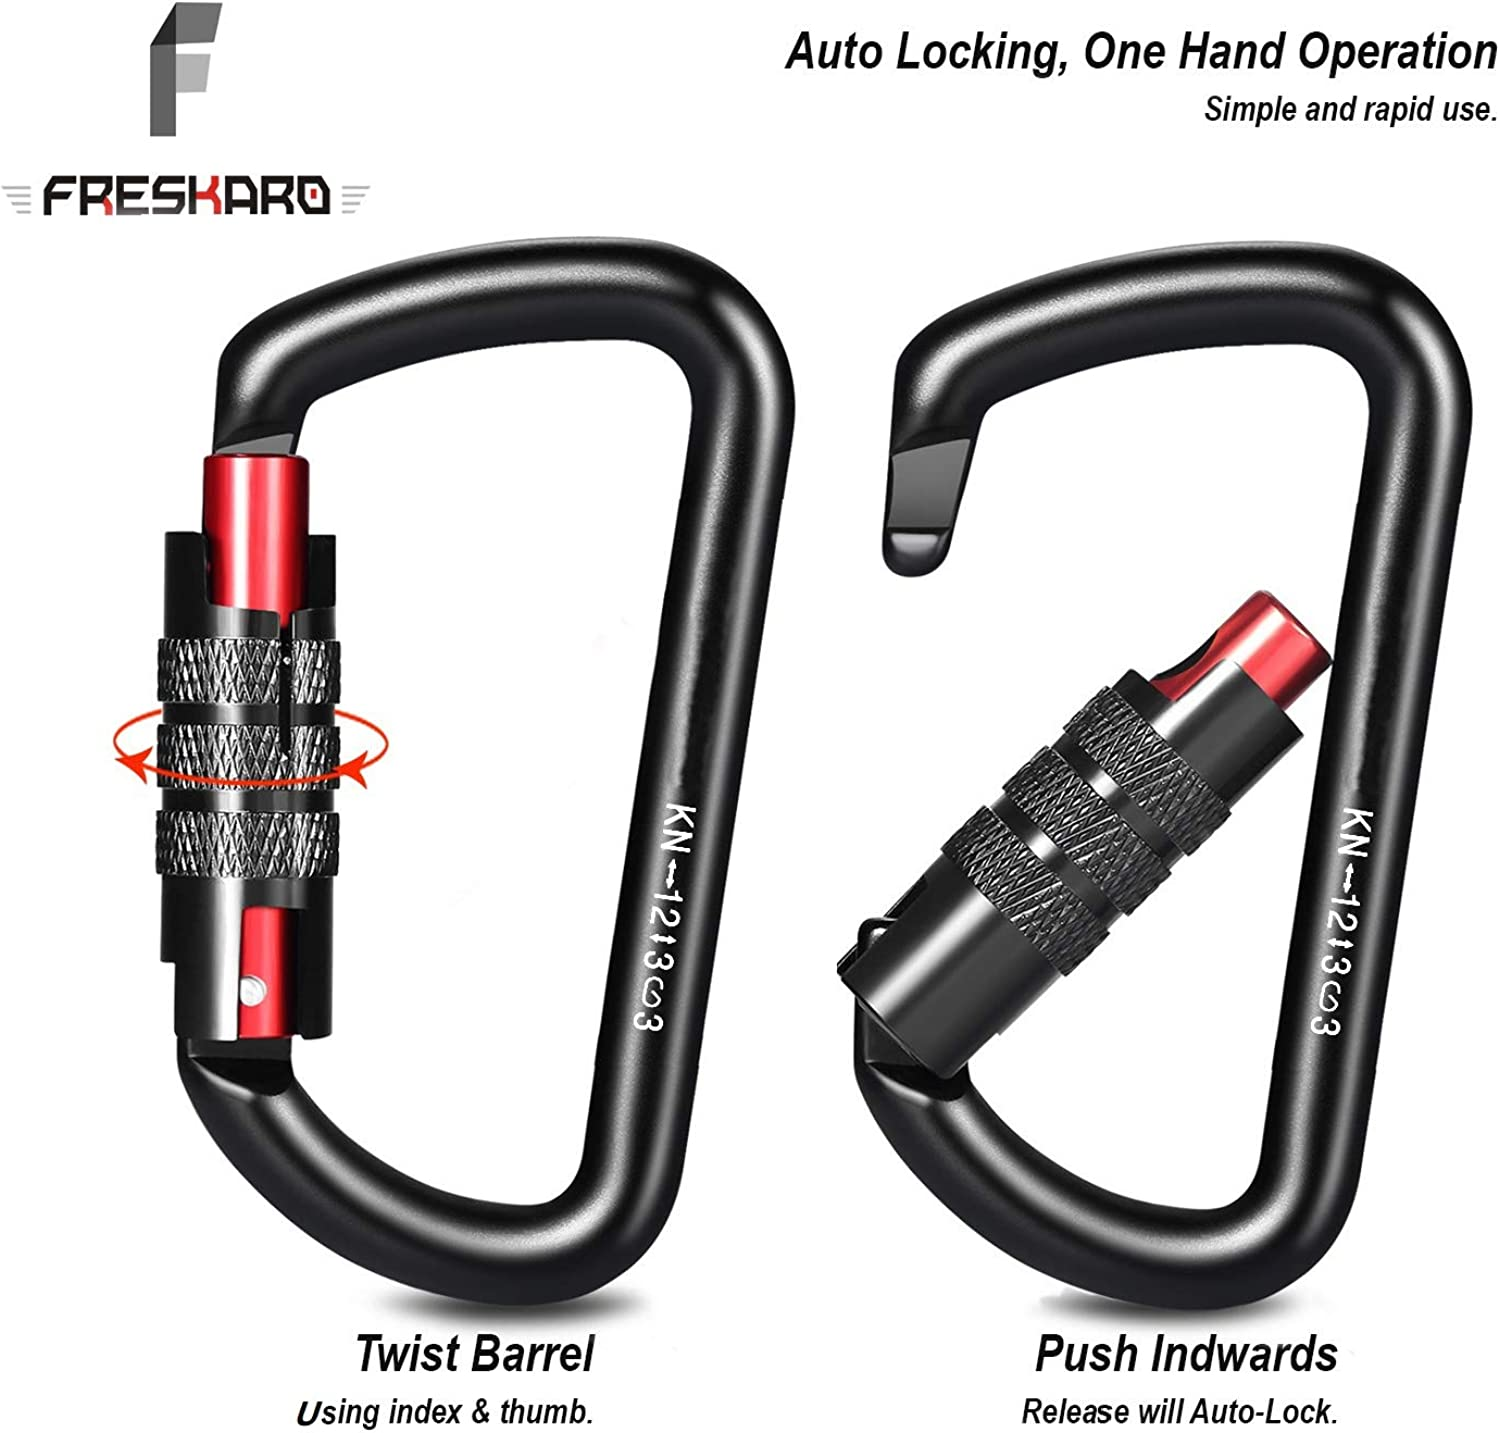 FresKaro 3inch Twist Locking Carabiner Clips, 12KN-2698lbs, 7075 Aluminum: Clothing